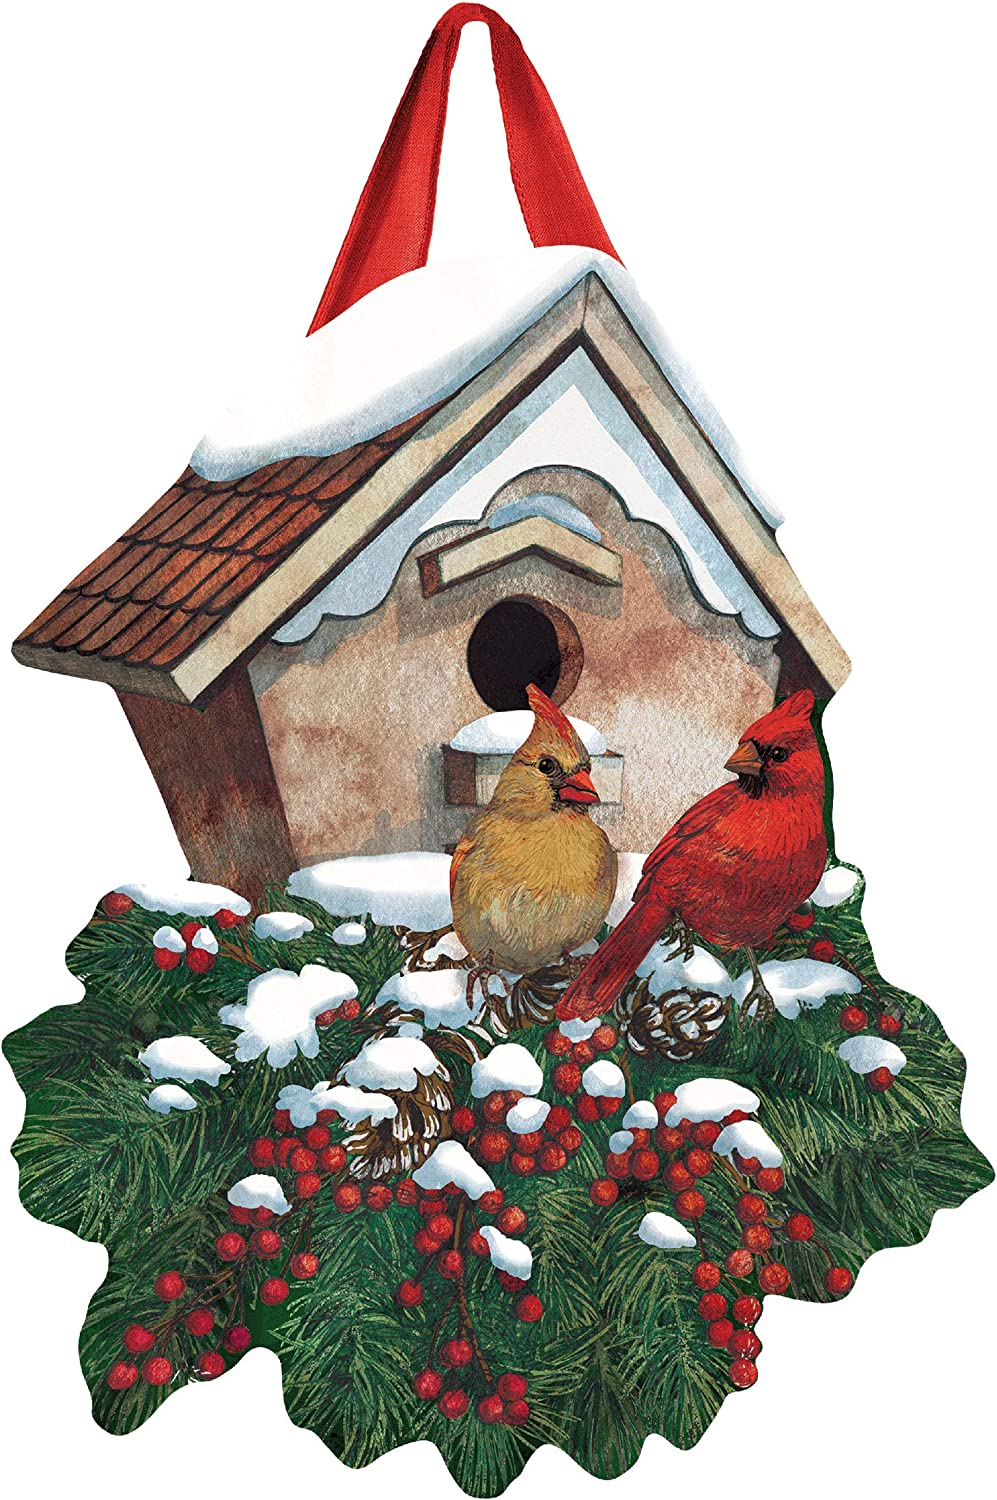 Studio M Winter Home Cardinals Winter Door Décor Decorative Front Door Sign with Colorful Ribbon Hanger, Durable Fade Resistant PVC, Made in The USA, 16 x 20 Inches